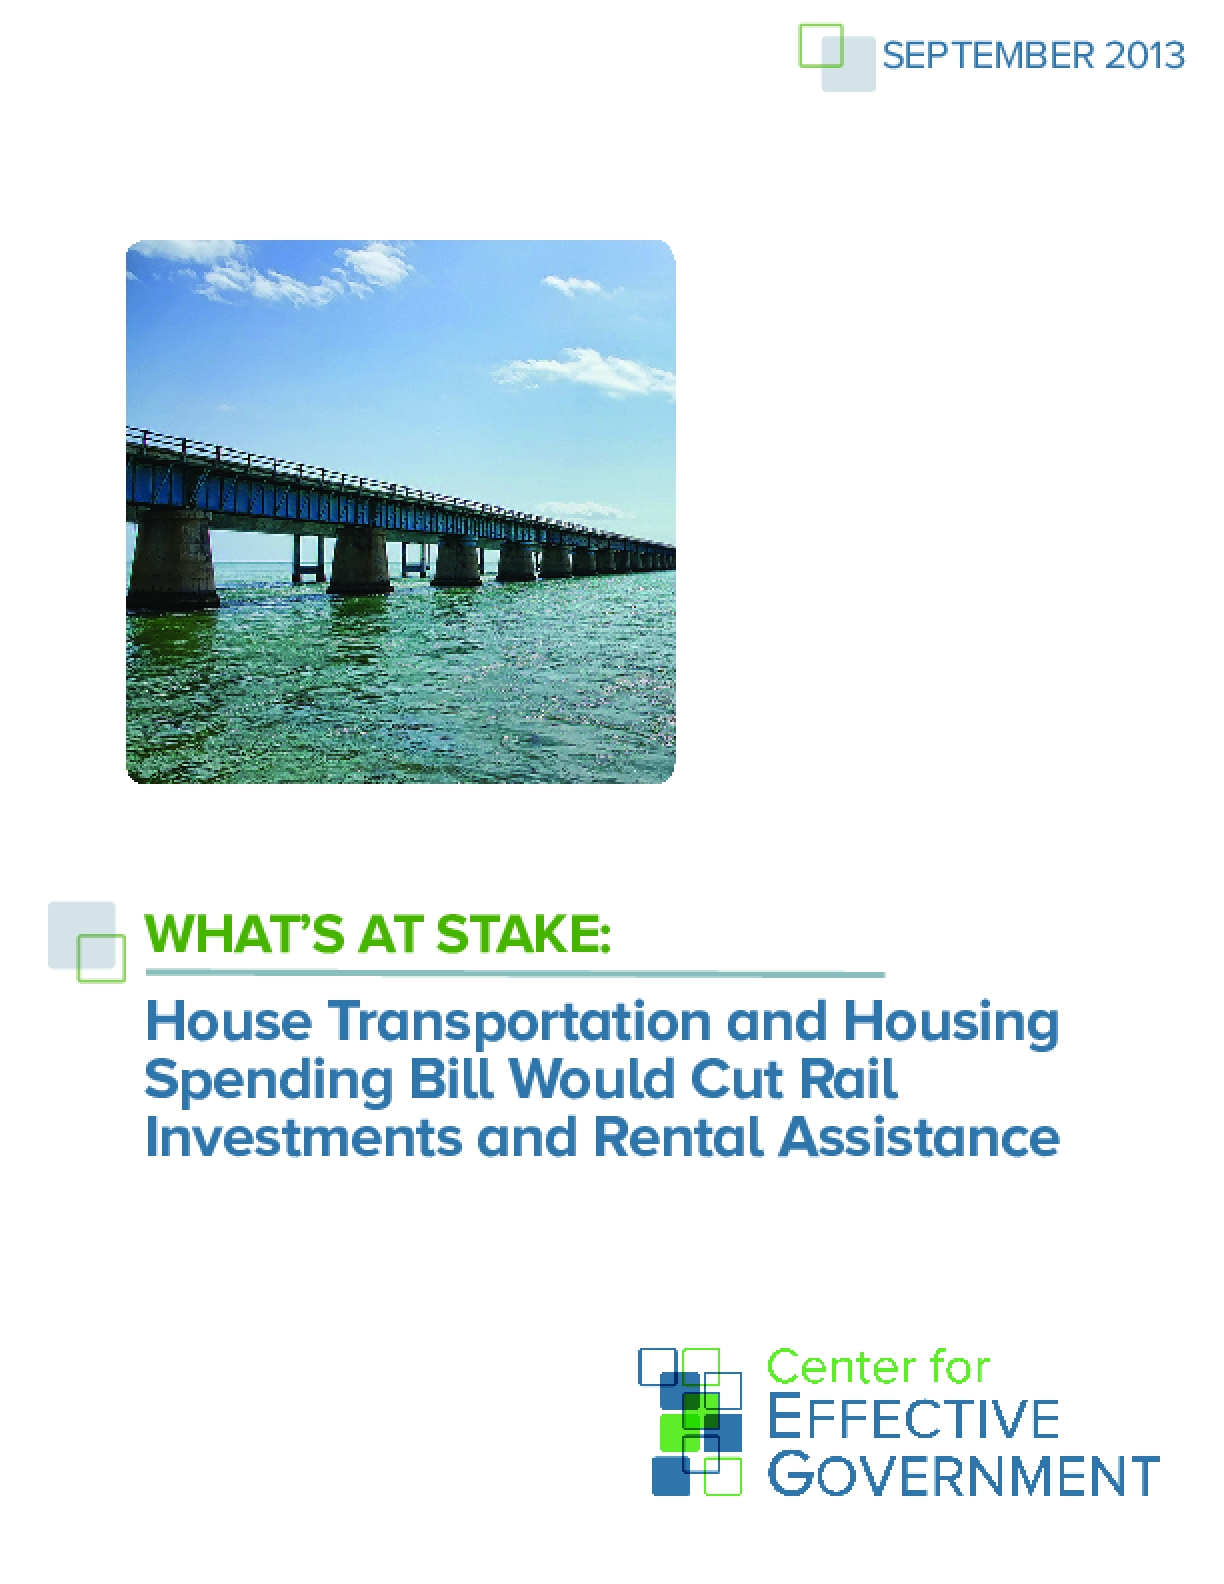 What's At Stake: House Transportation and Housing Spending Bill Would Cut Rail Investments and Rental Assistance